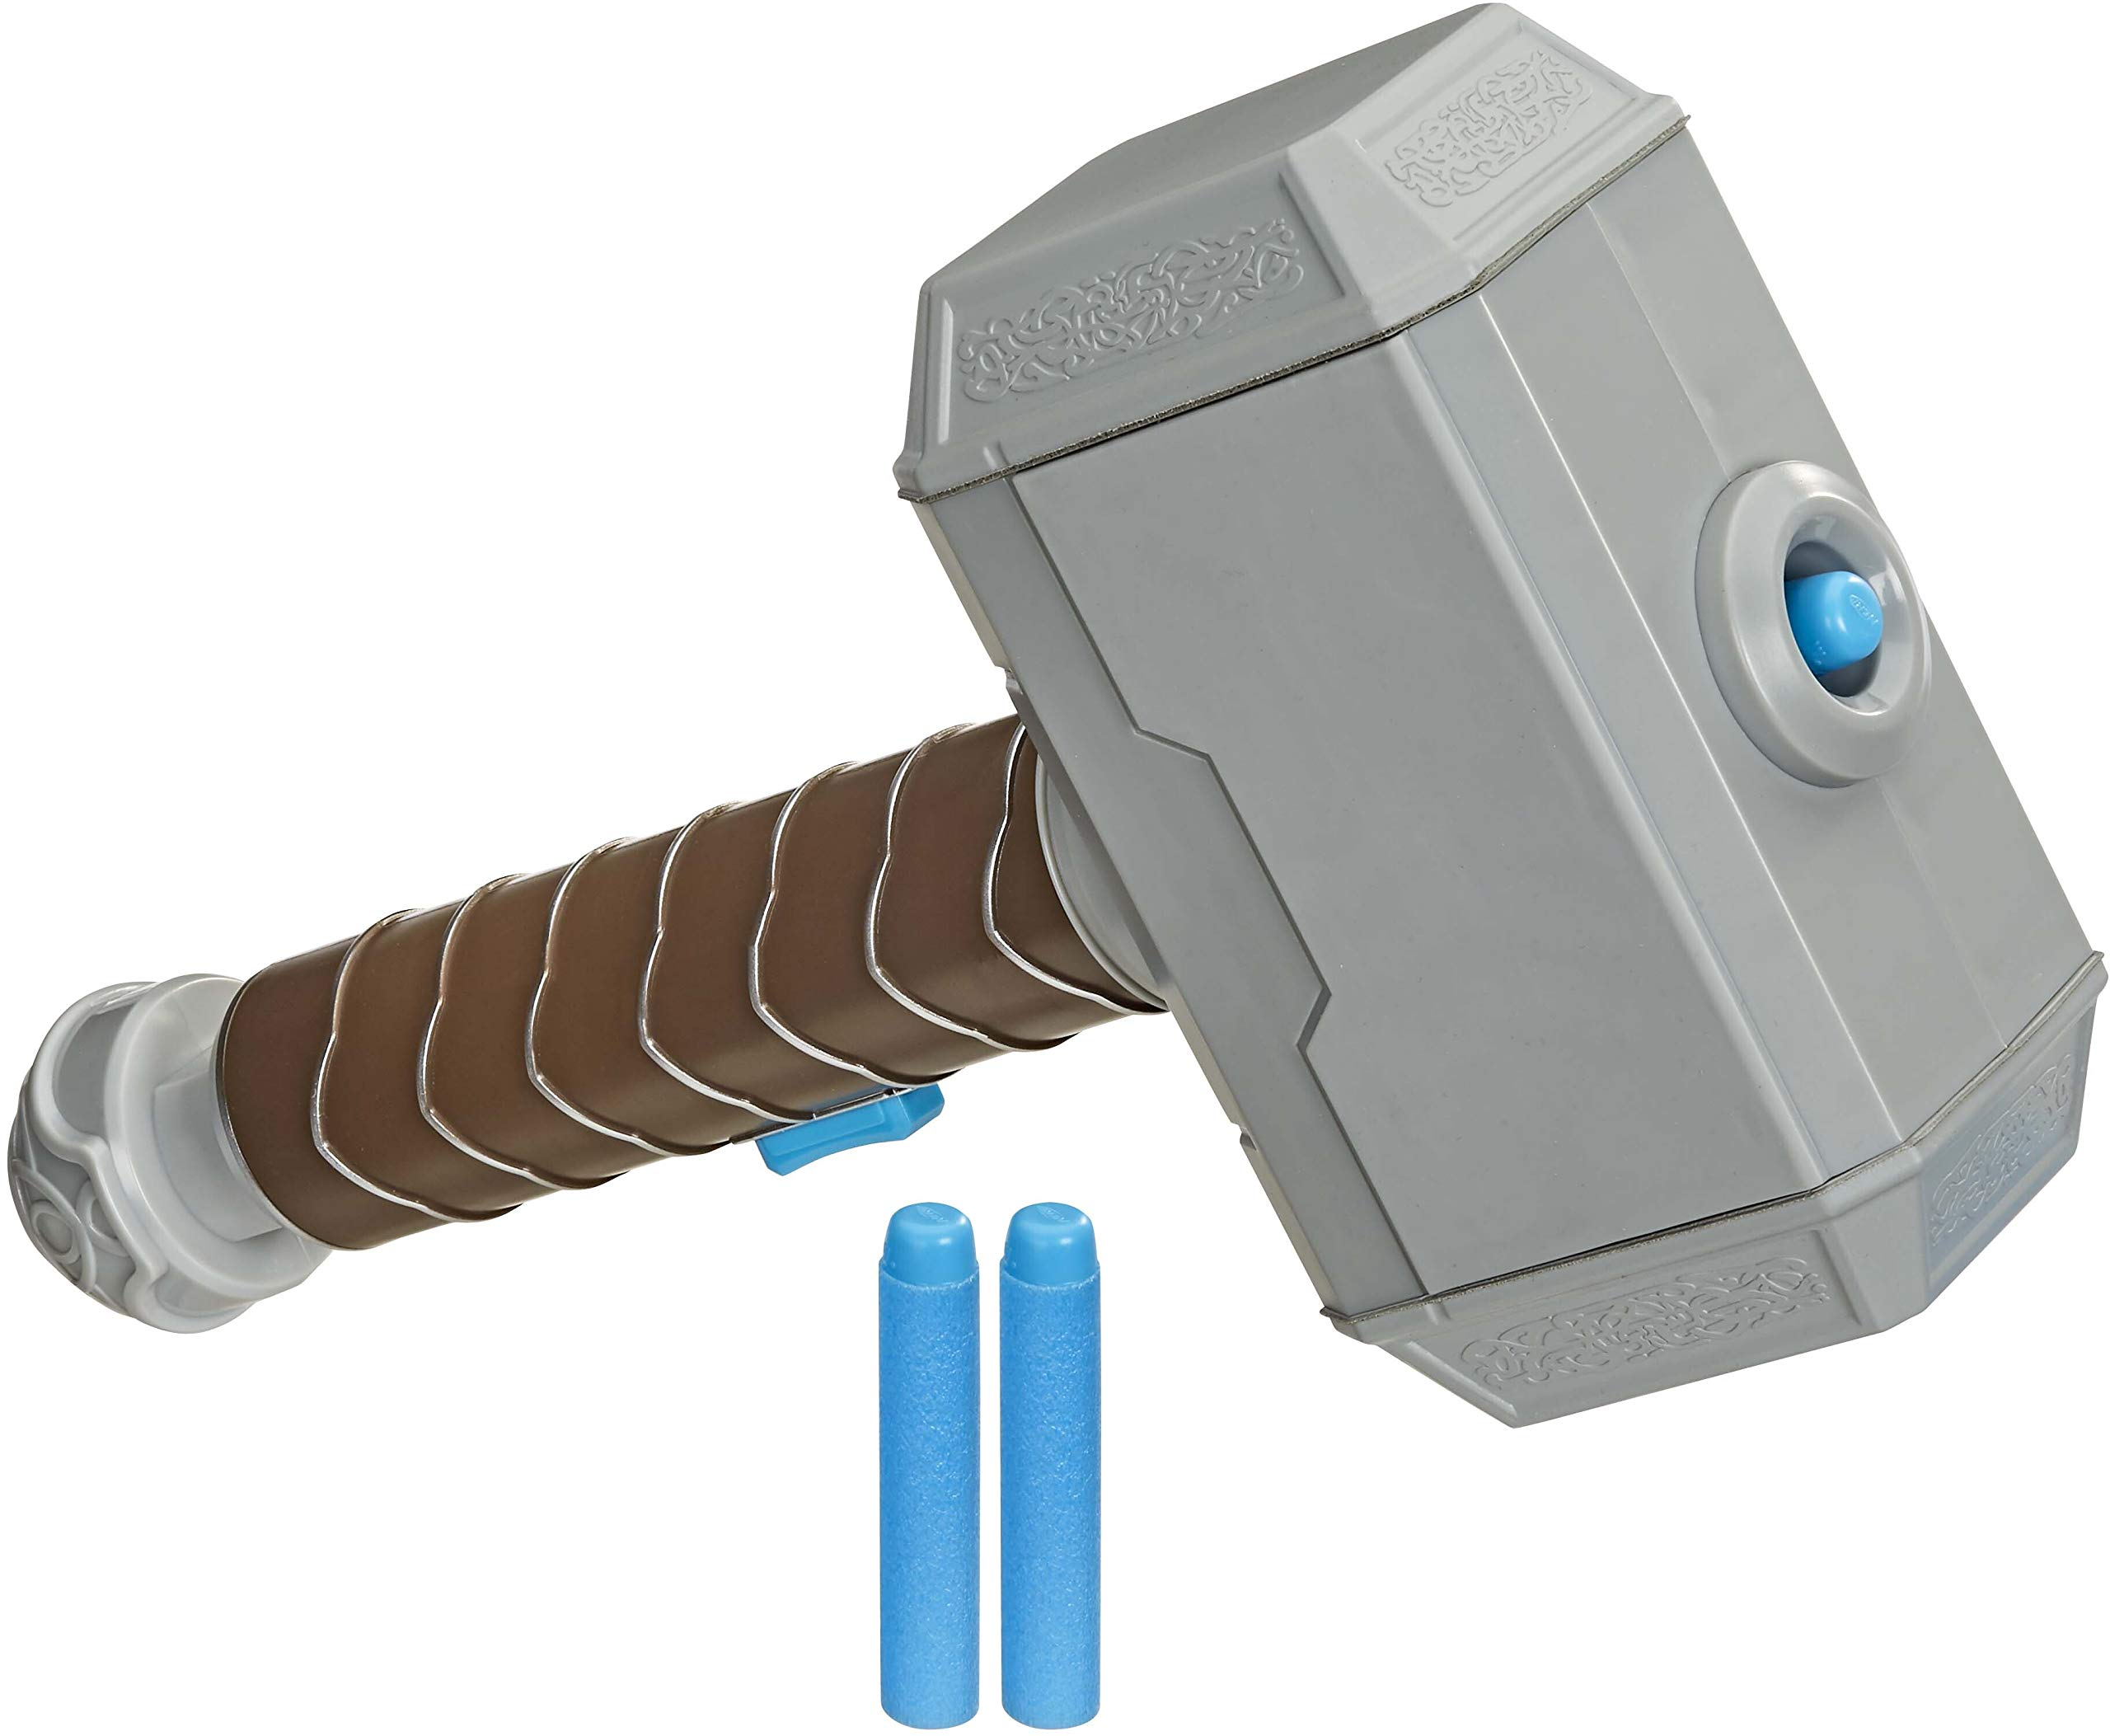 Avengers NERF Power Moves Marvel Thor Hammer Strike Hammer NERF Dart-Launching Toy for Kids Roleplay, Toys for Kids Ages 5 and Up